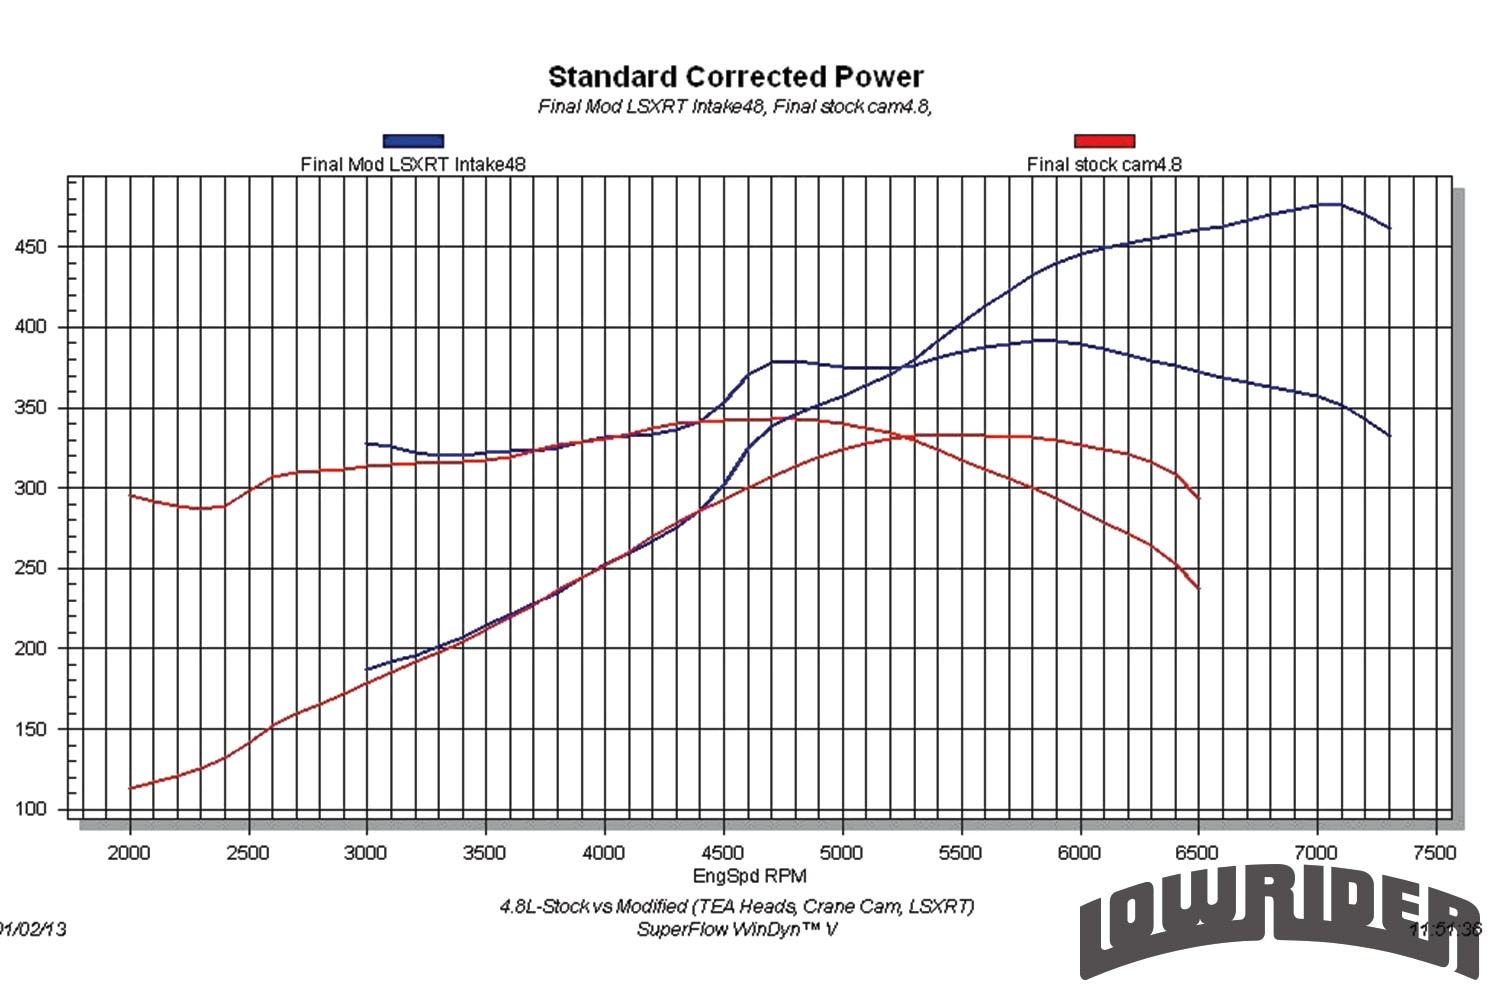 <strong>13</strong>. 4.8L Stock vs. Modified Tested on the engine dyno, the stock 4.8L produced 333 hp at 5,400 rpm and 343 lb-ft of torque at 4,700 rpm. After replacing the stock components with a set of ported heads from Total Engine Airflow, a Crane 224/232 cam and FAST LSXRT intake, the peak power numbers jumped to 476 hp at 7,000 and 392 lb-ft at 5,900 rpm. The gains were most impressive at high rpm, but note that the modified combination lost no power to the stock one, even down at 3,000 rpm.